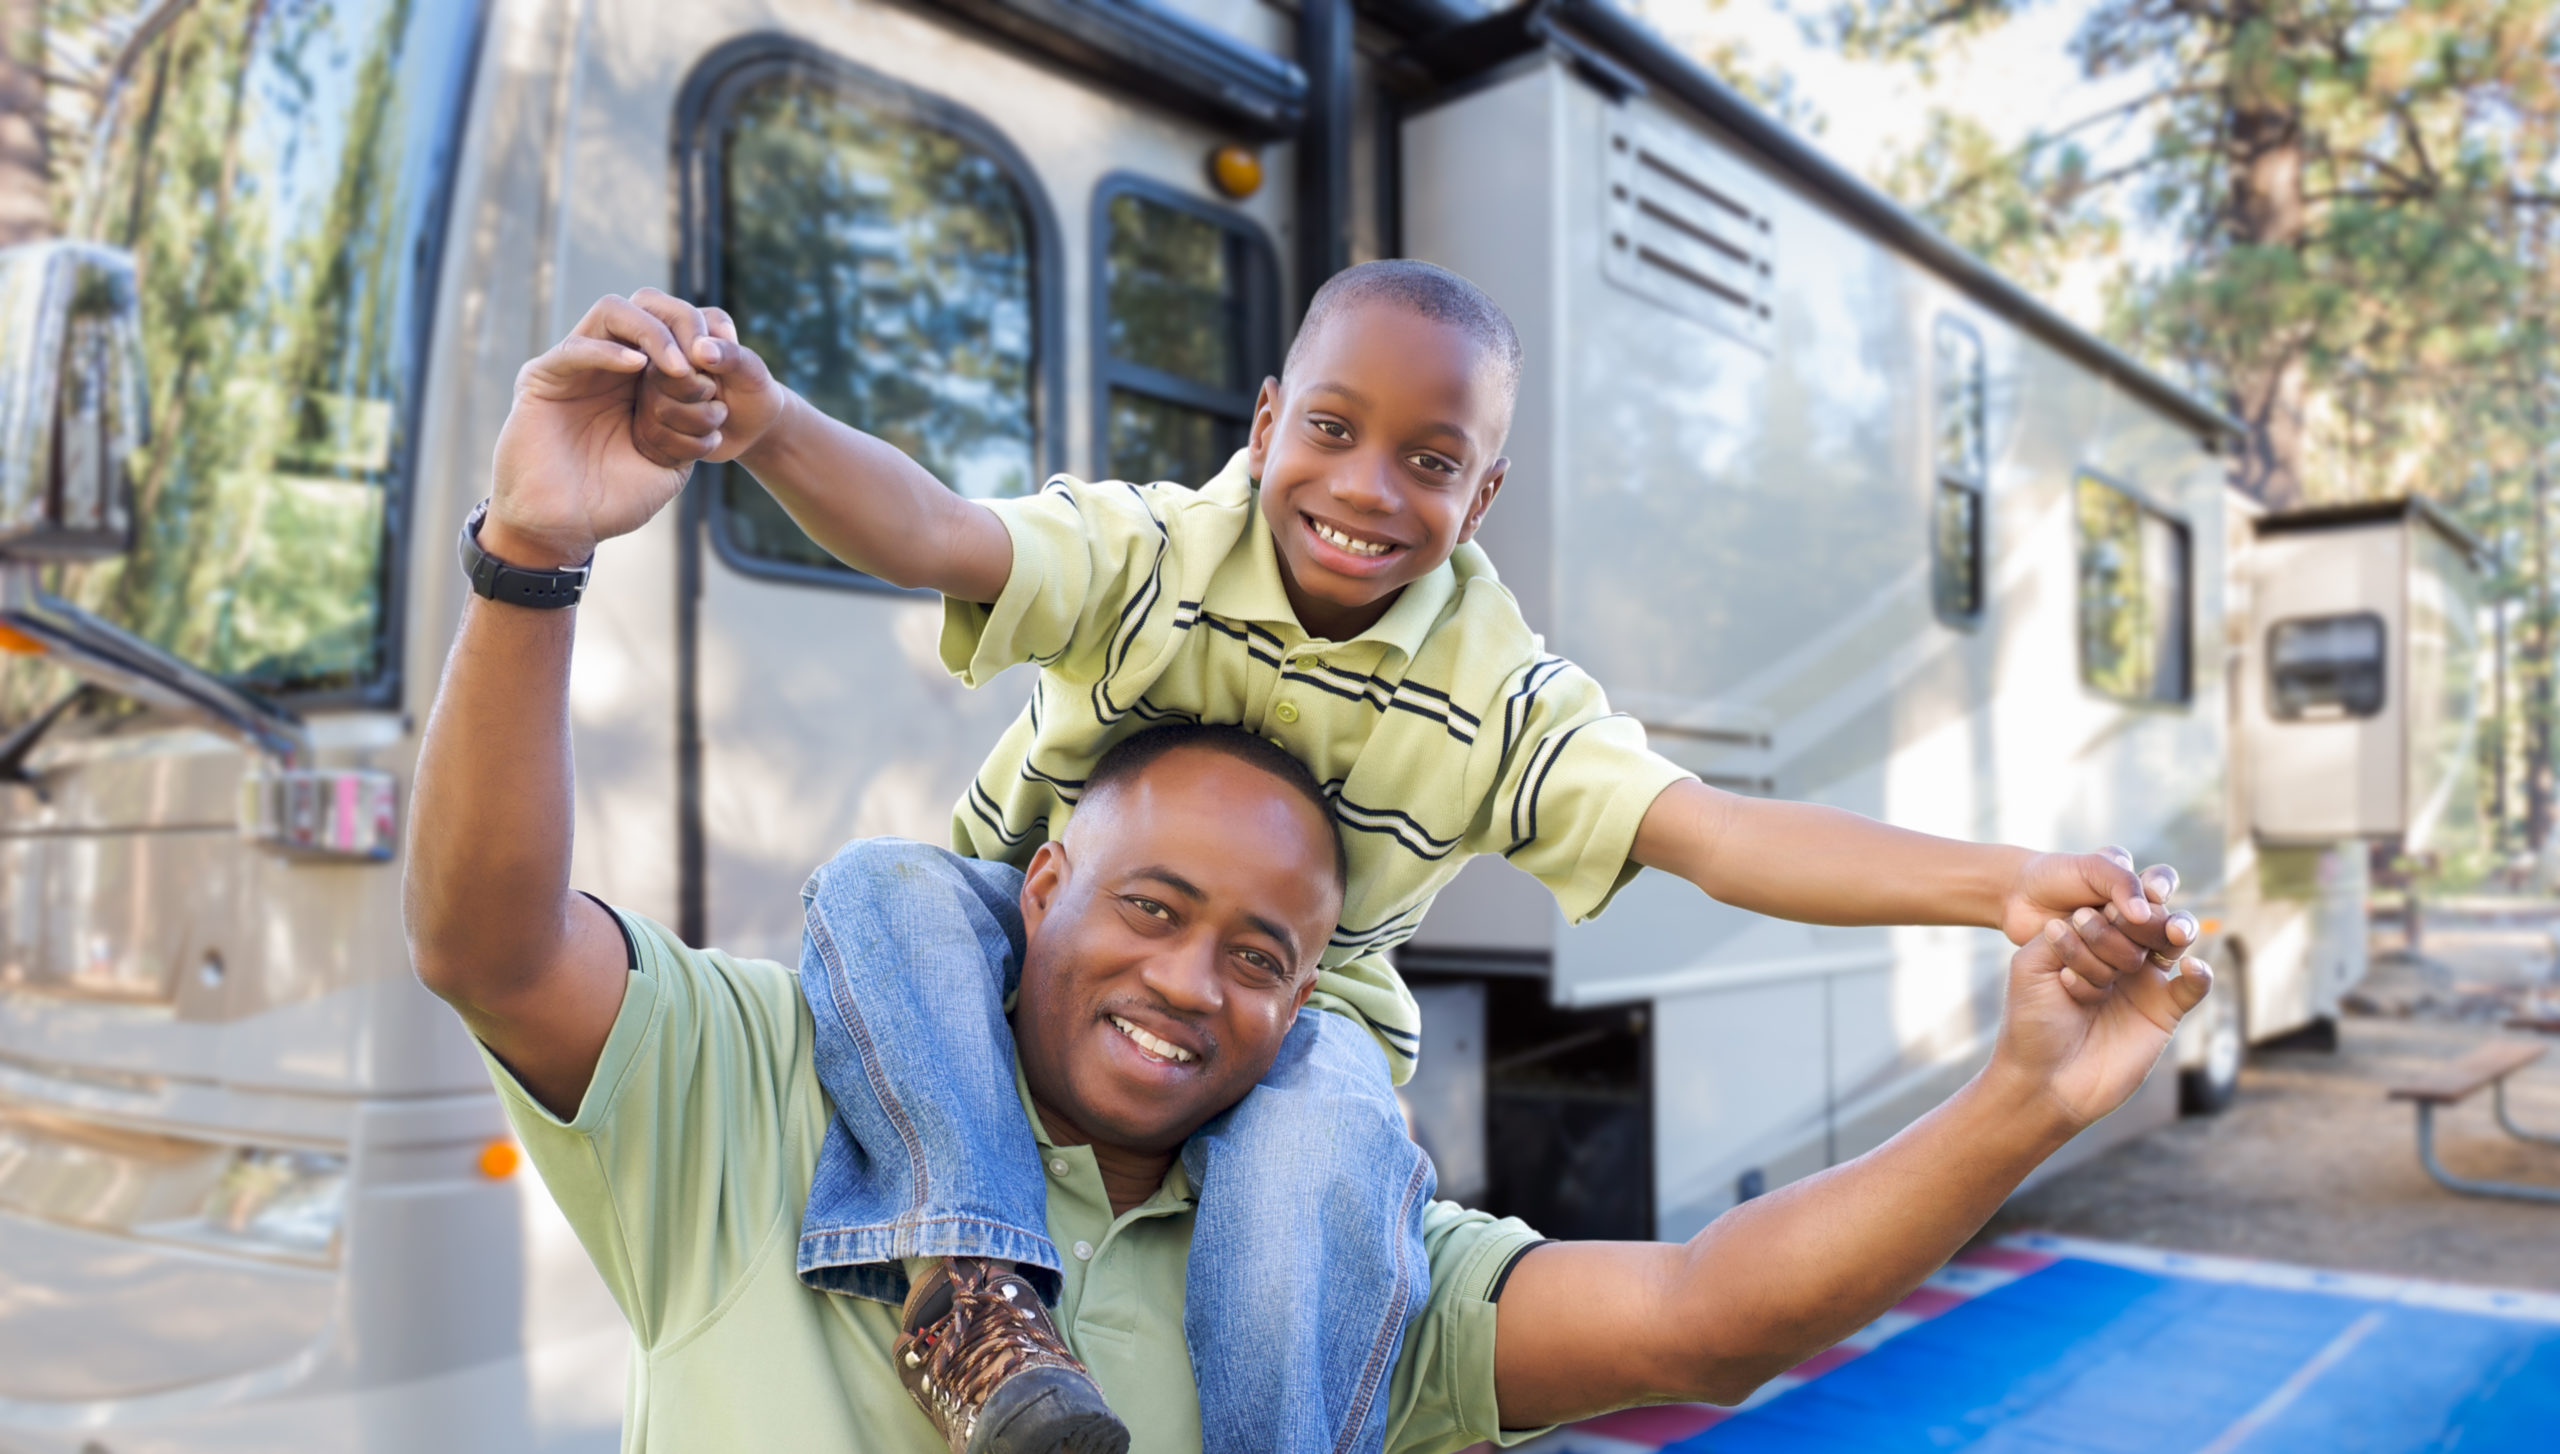 Son on his father's shoulders in front of their RV